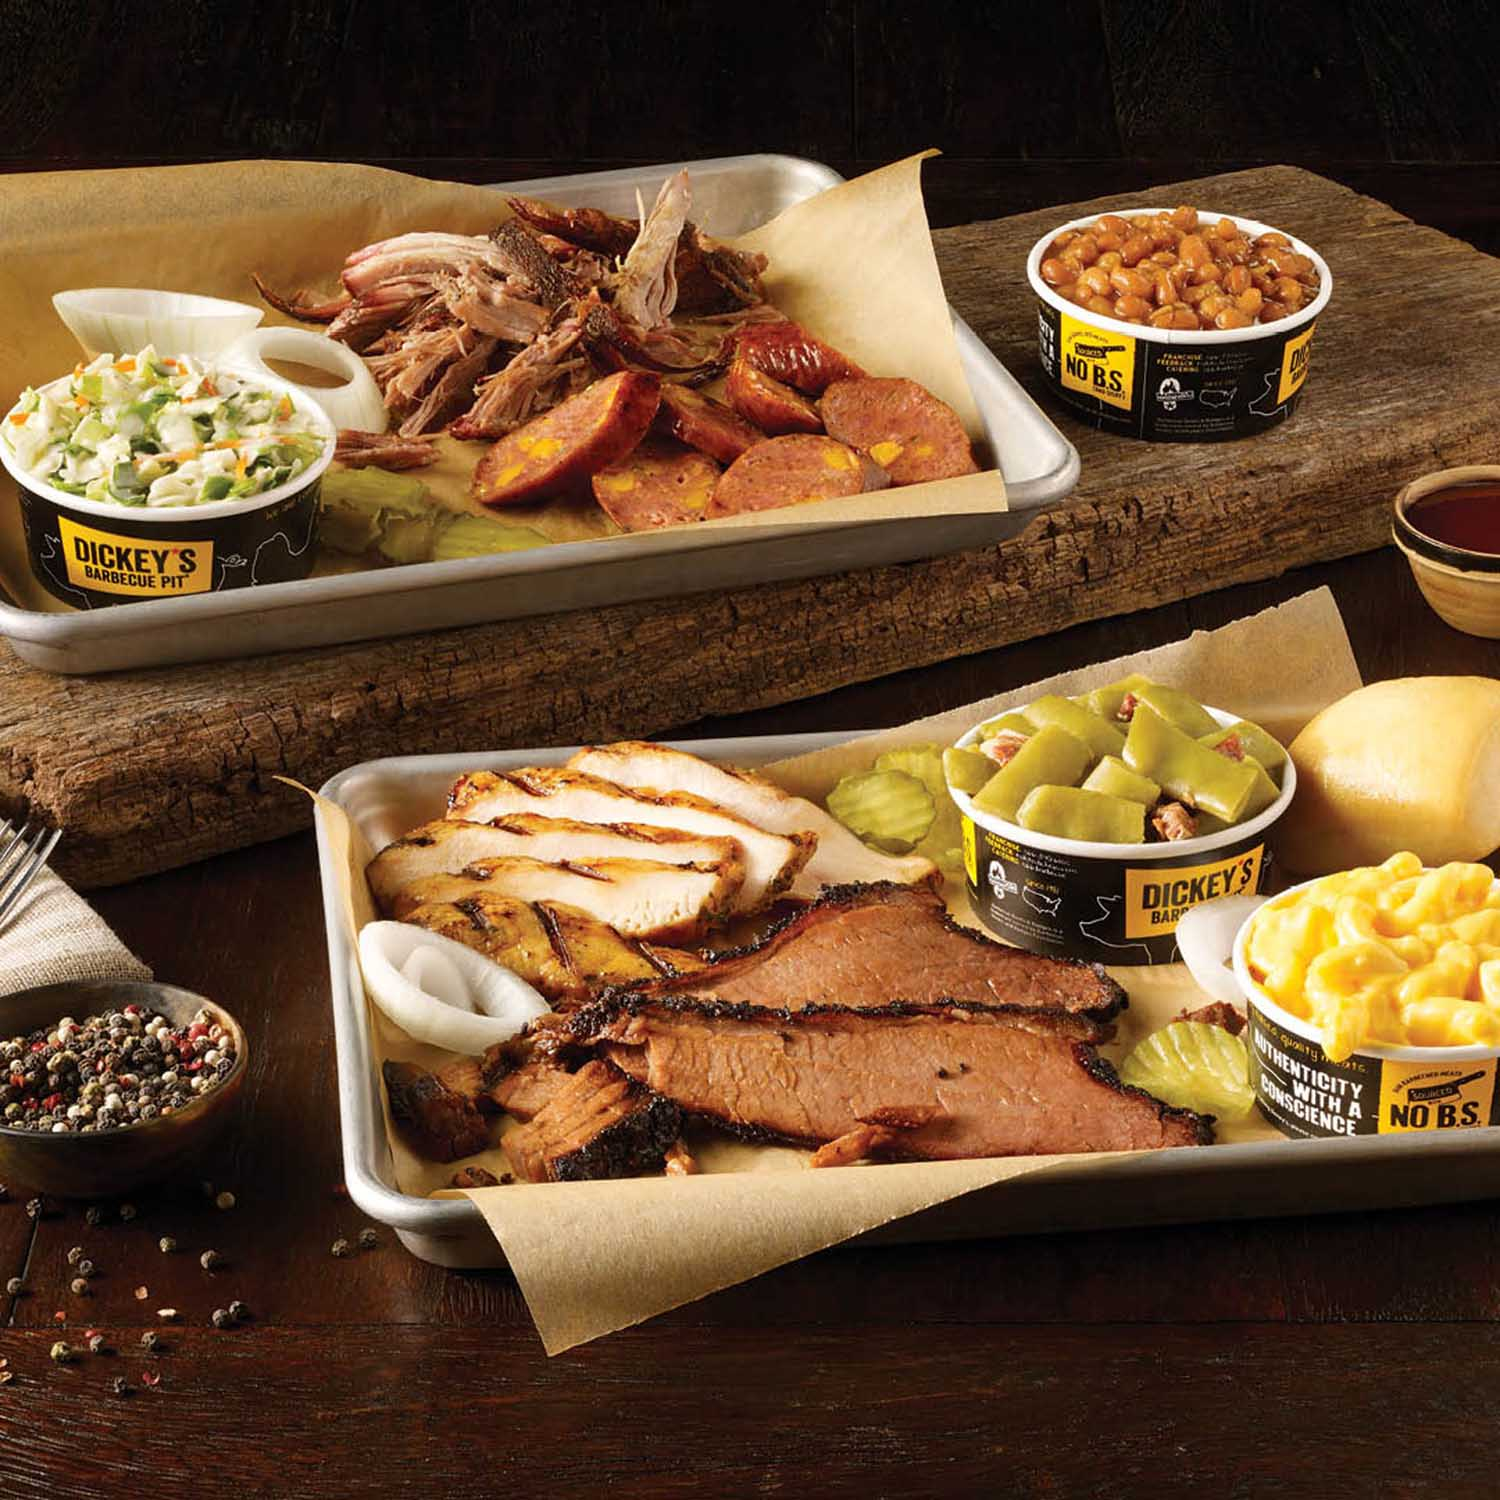 Restaurant Development and Design: Dickey's Barbecue Pit to Expand N.Y. Footprint